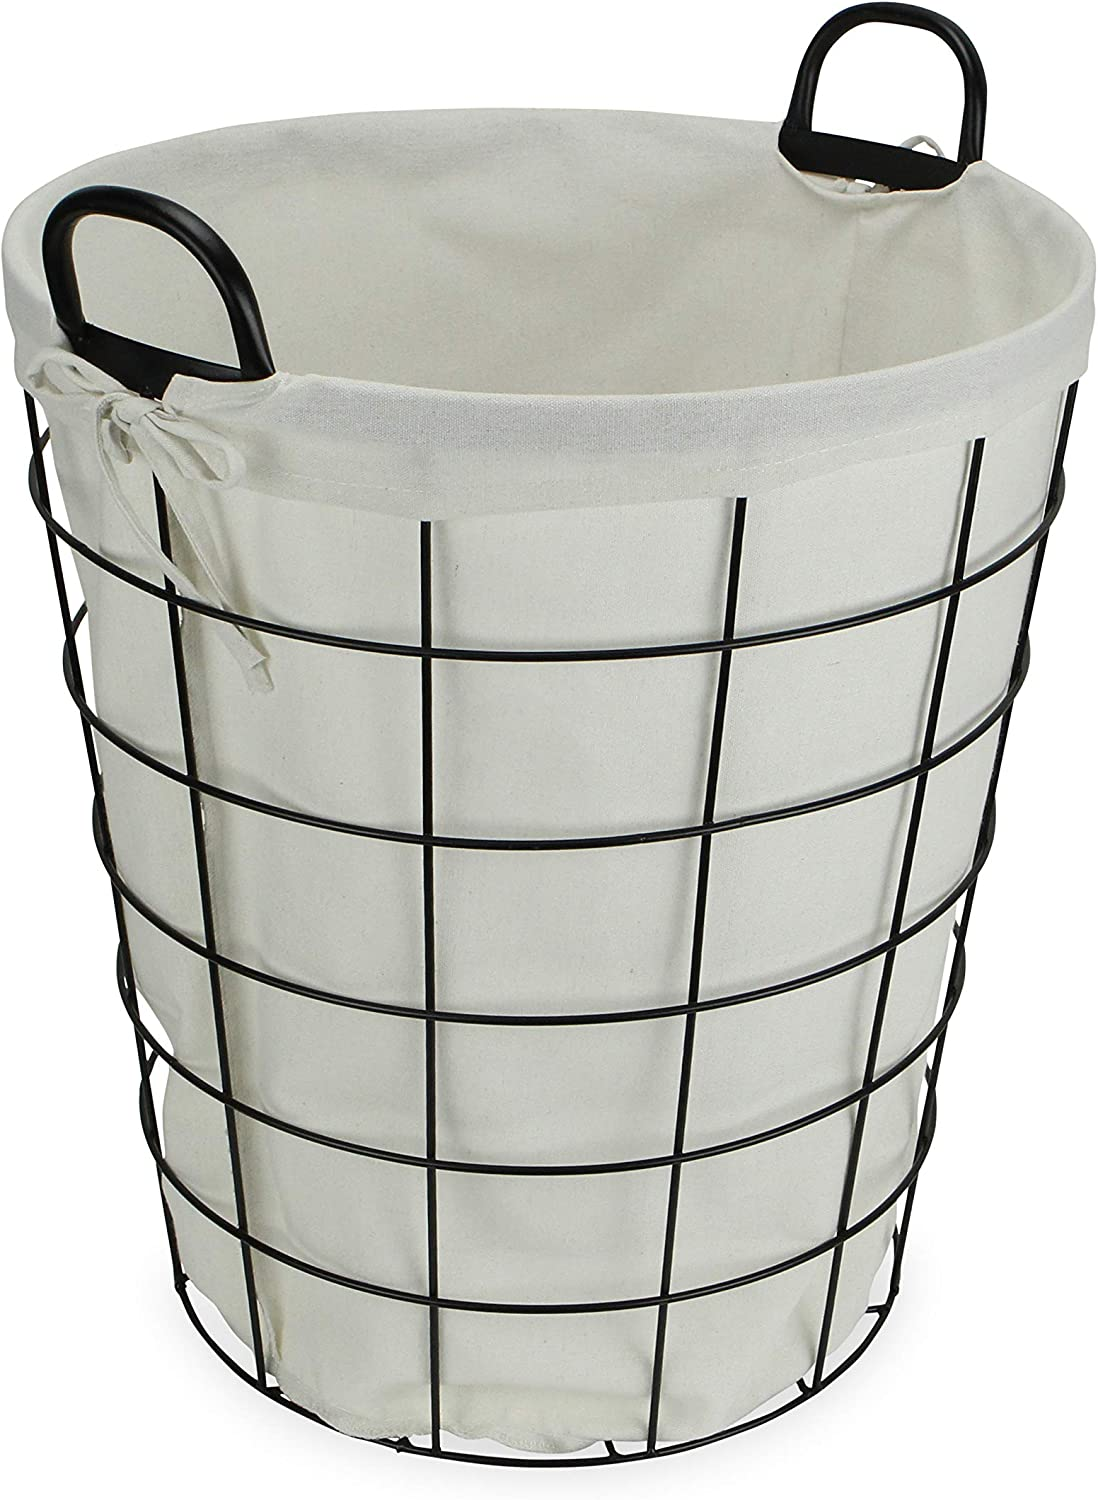 Cheung's 16S005 Lined Metal Wire Basket with handles, Black